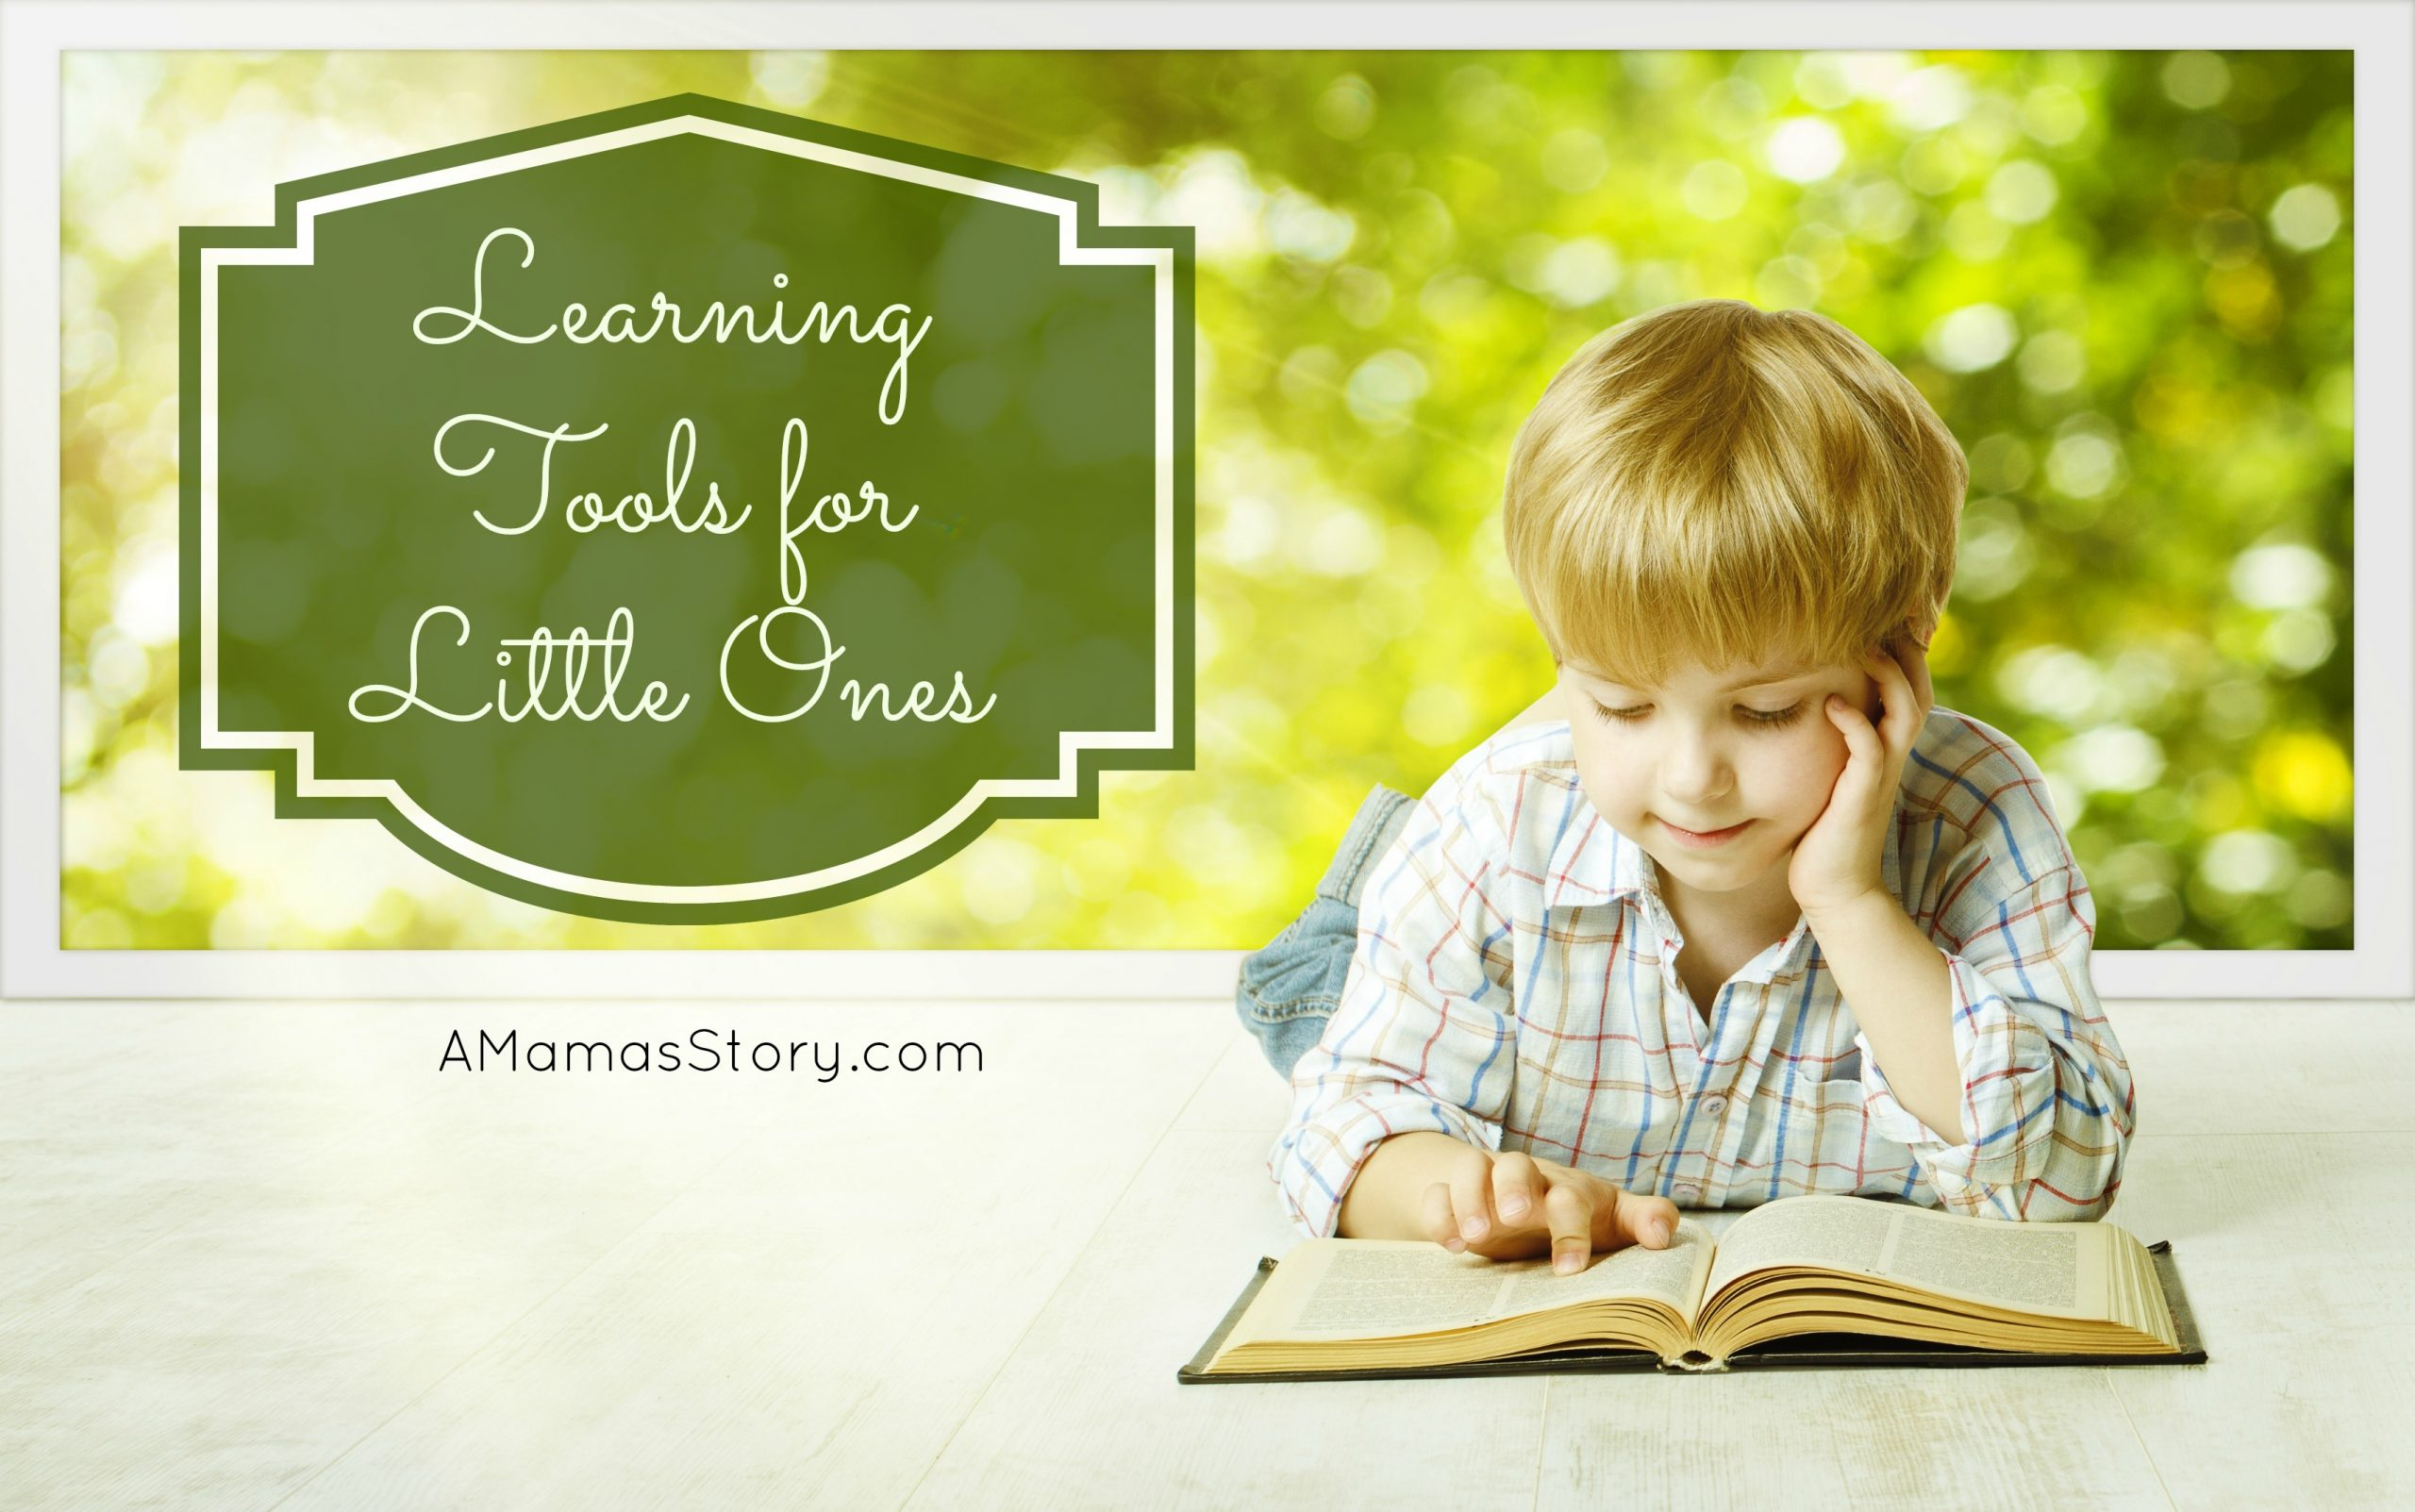 Learning Tools for Little Ones